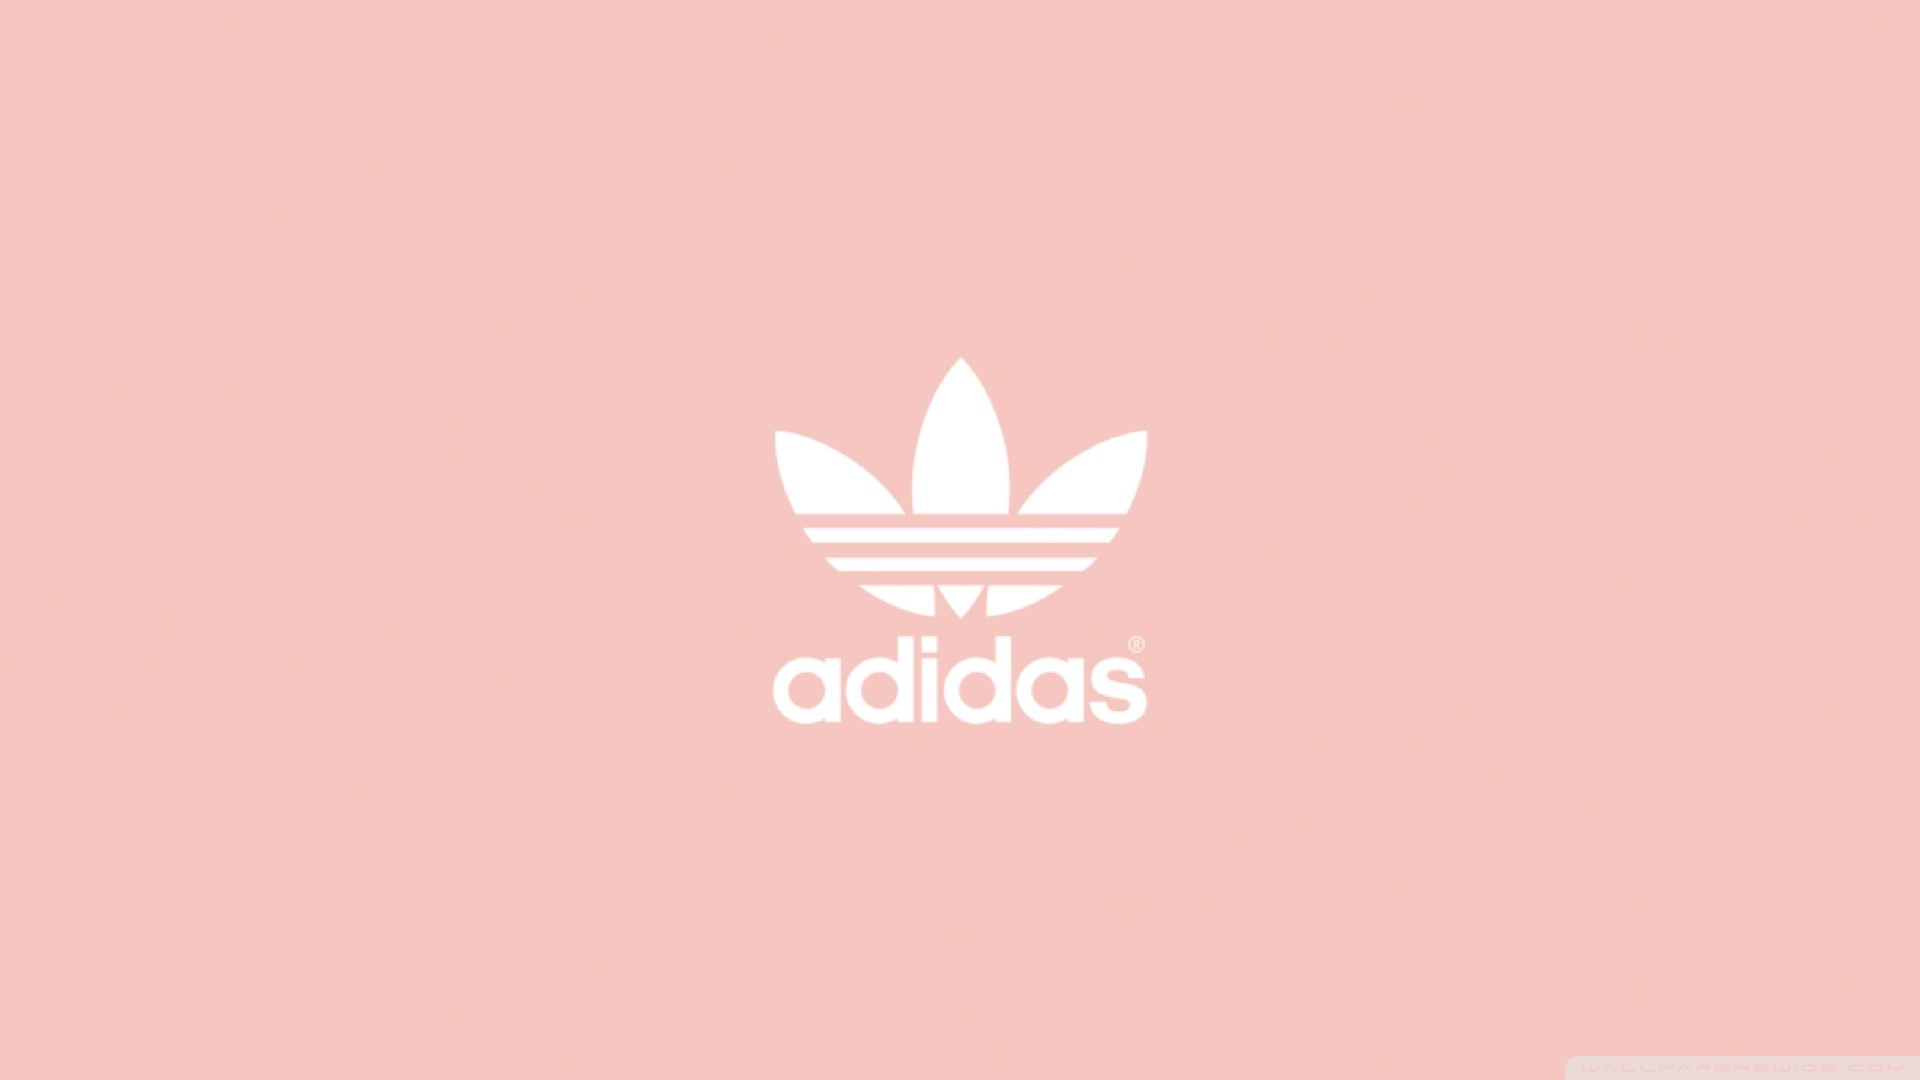 best service 8ace0 6ce14 Wallpaper Pink Pink Wallpaper Pink Adidas Adidas Wallpaper Adidas qnBzxA